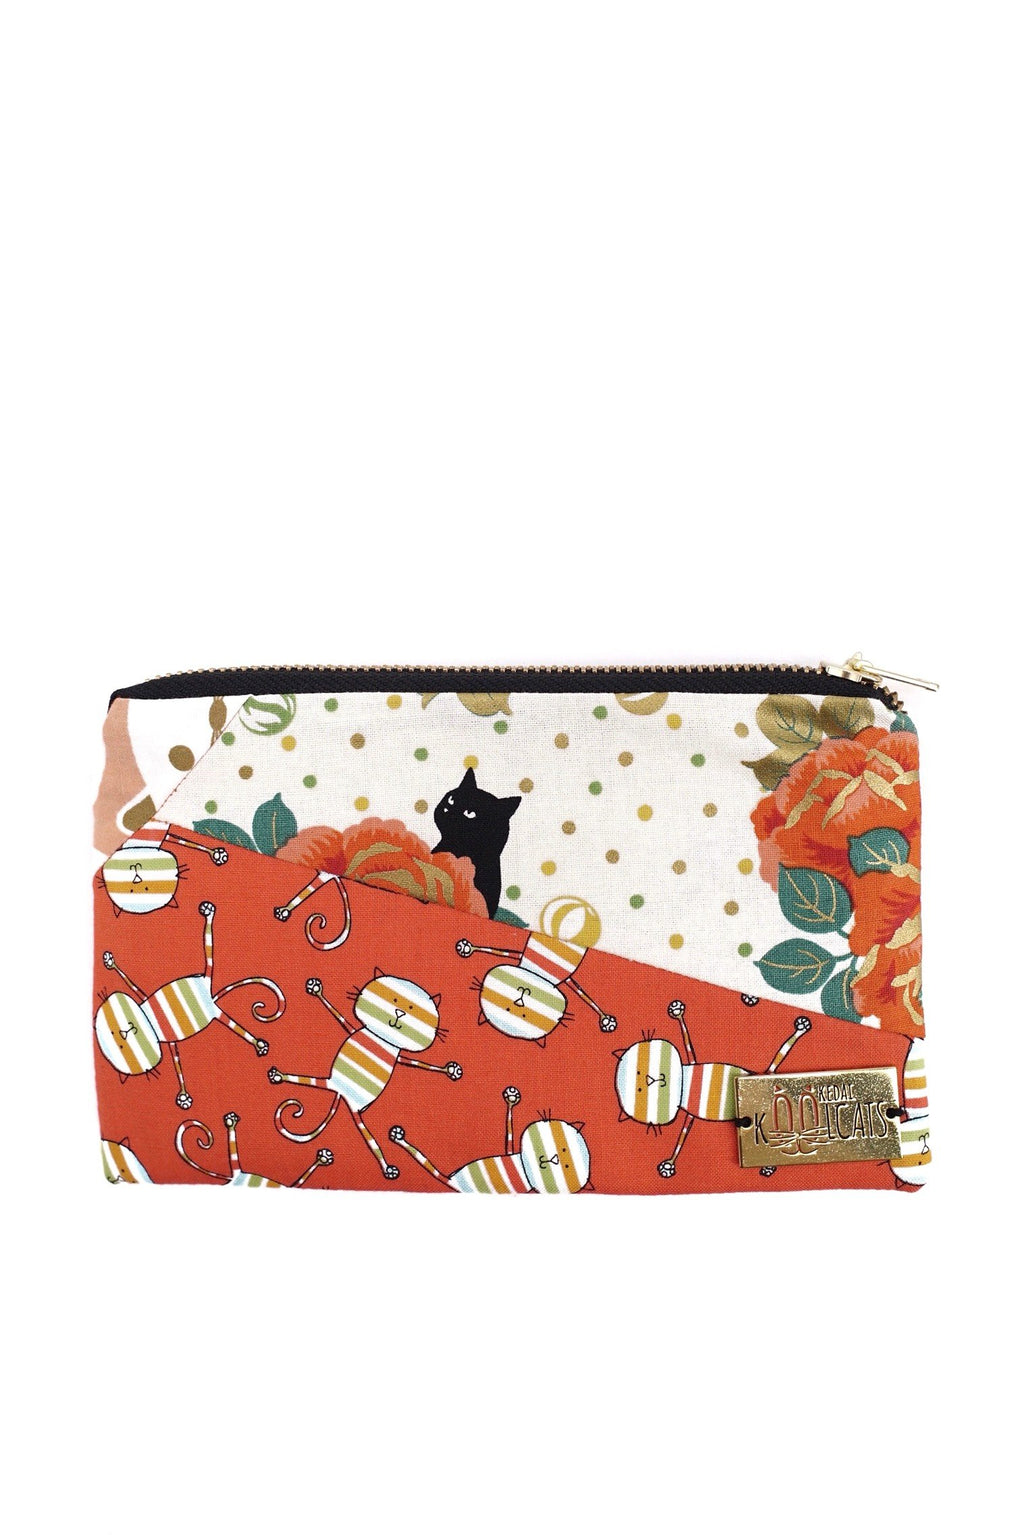 Patchwork Pouch in Orange Cats